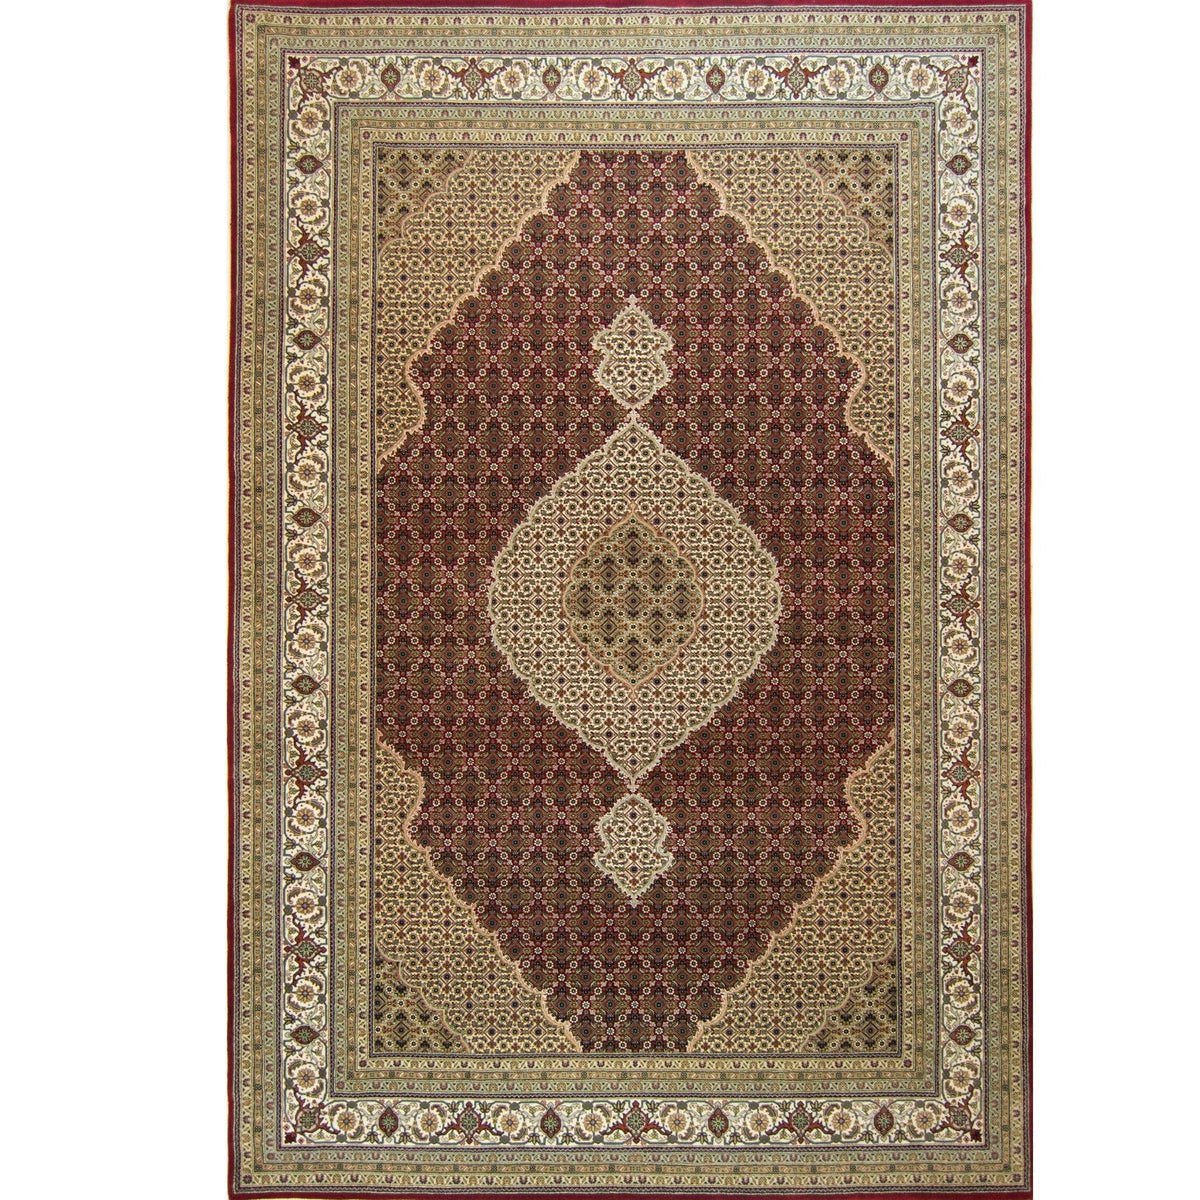 Super Fine Hand-knotted Wool and Silk Tabriz - Mahi Rug 203 cm x 300 cm Persian-Rug | House-of-Haghi | NewMarket | Auckland | NZ | Handmade Persian Rugs | Hand Knotted Persian Rugs